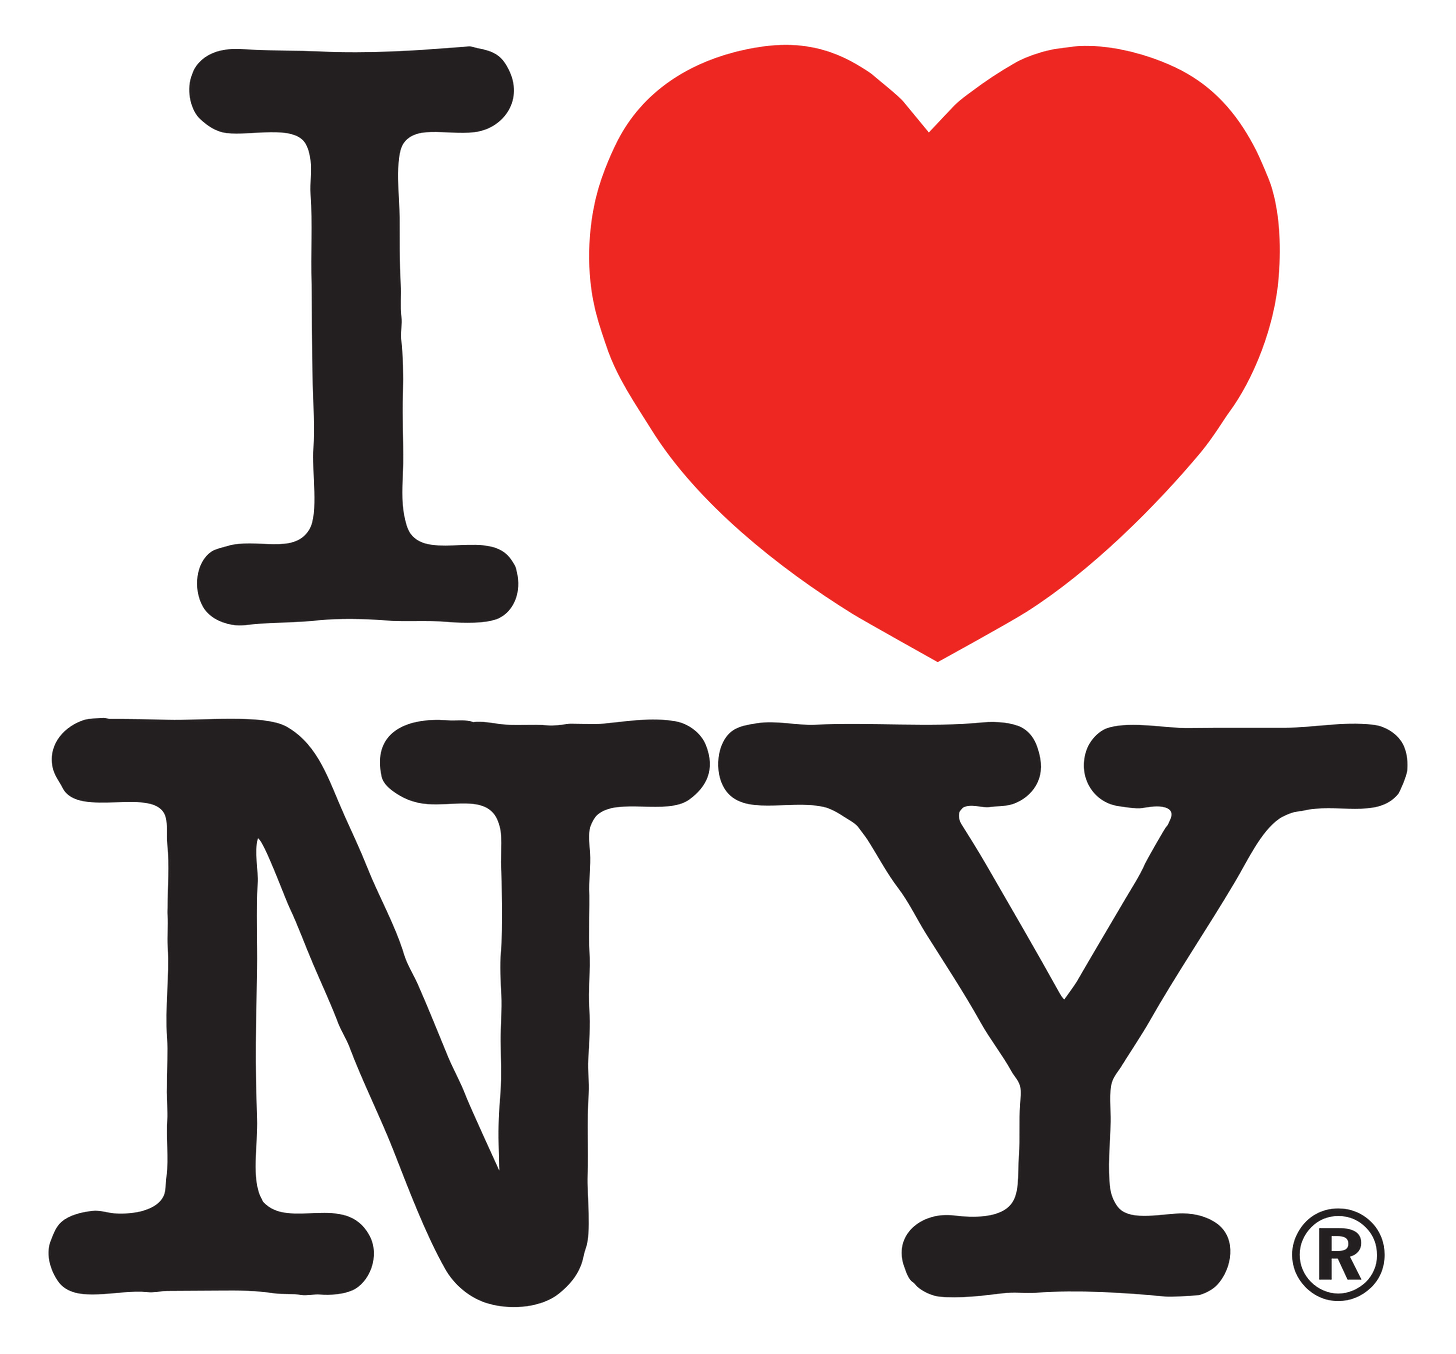 The logo consists of the capital letter I, followed by a red heart symbol, below which are the capital letters N and Y, set in the rounded slab serif typeface American Typewriter.